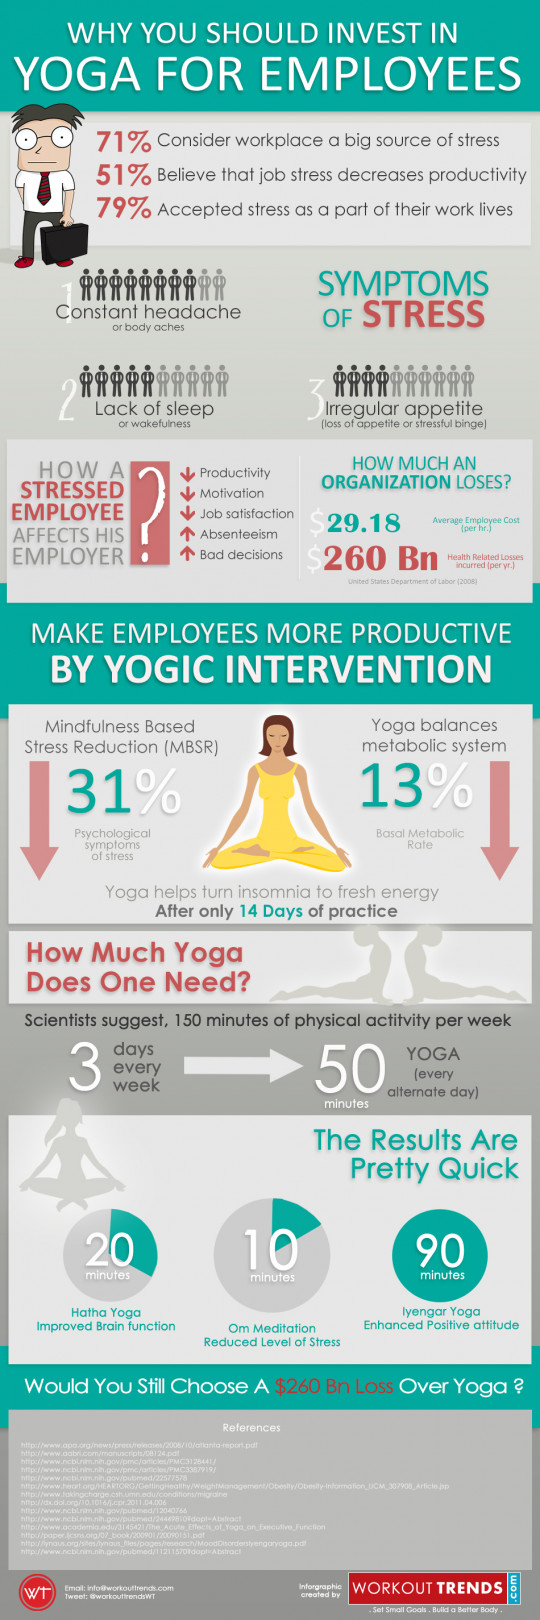 Why You Should Invest In Yoga For Employees